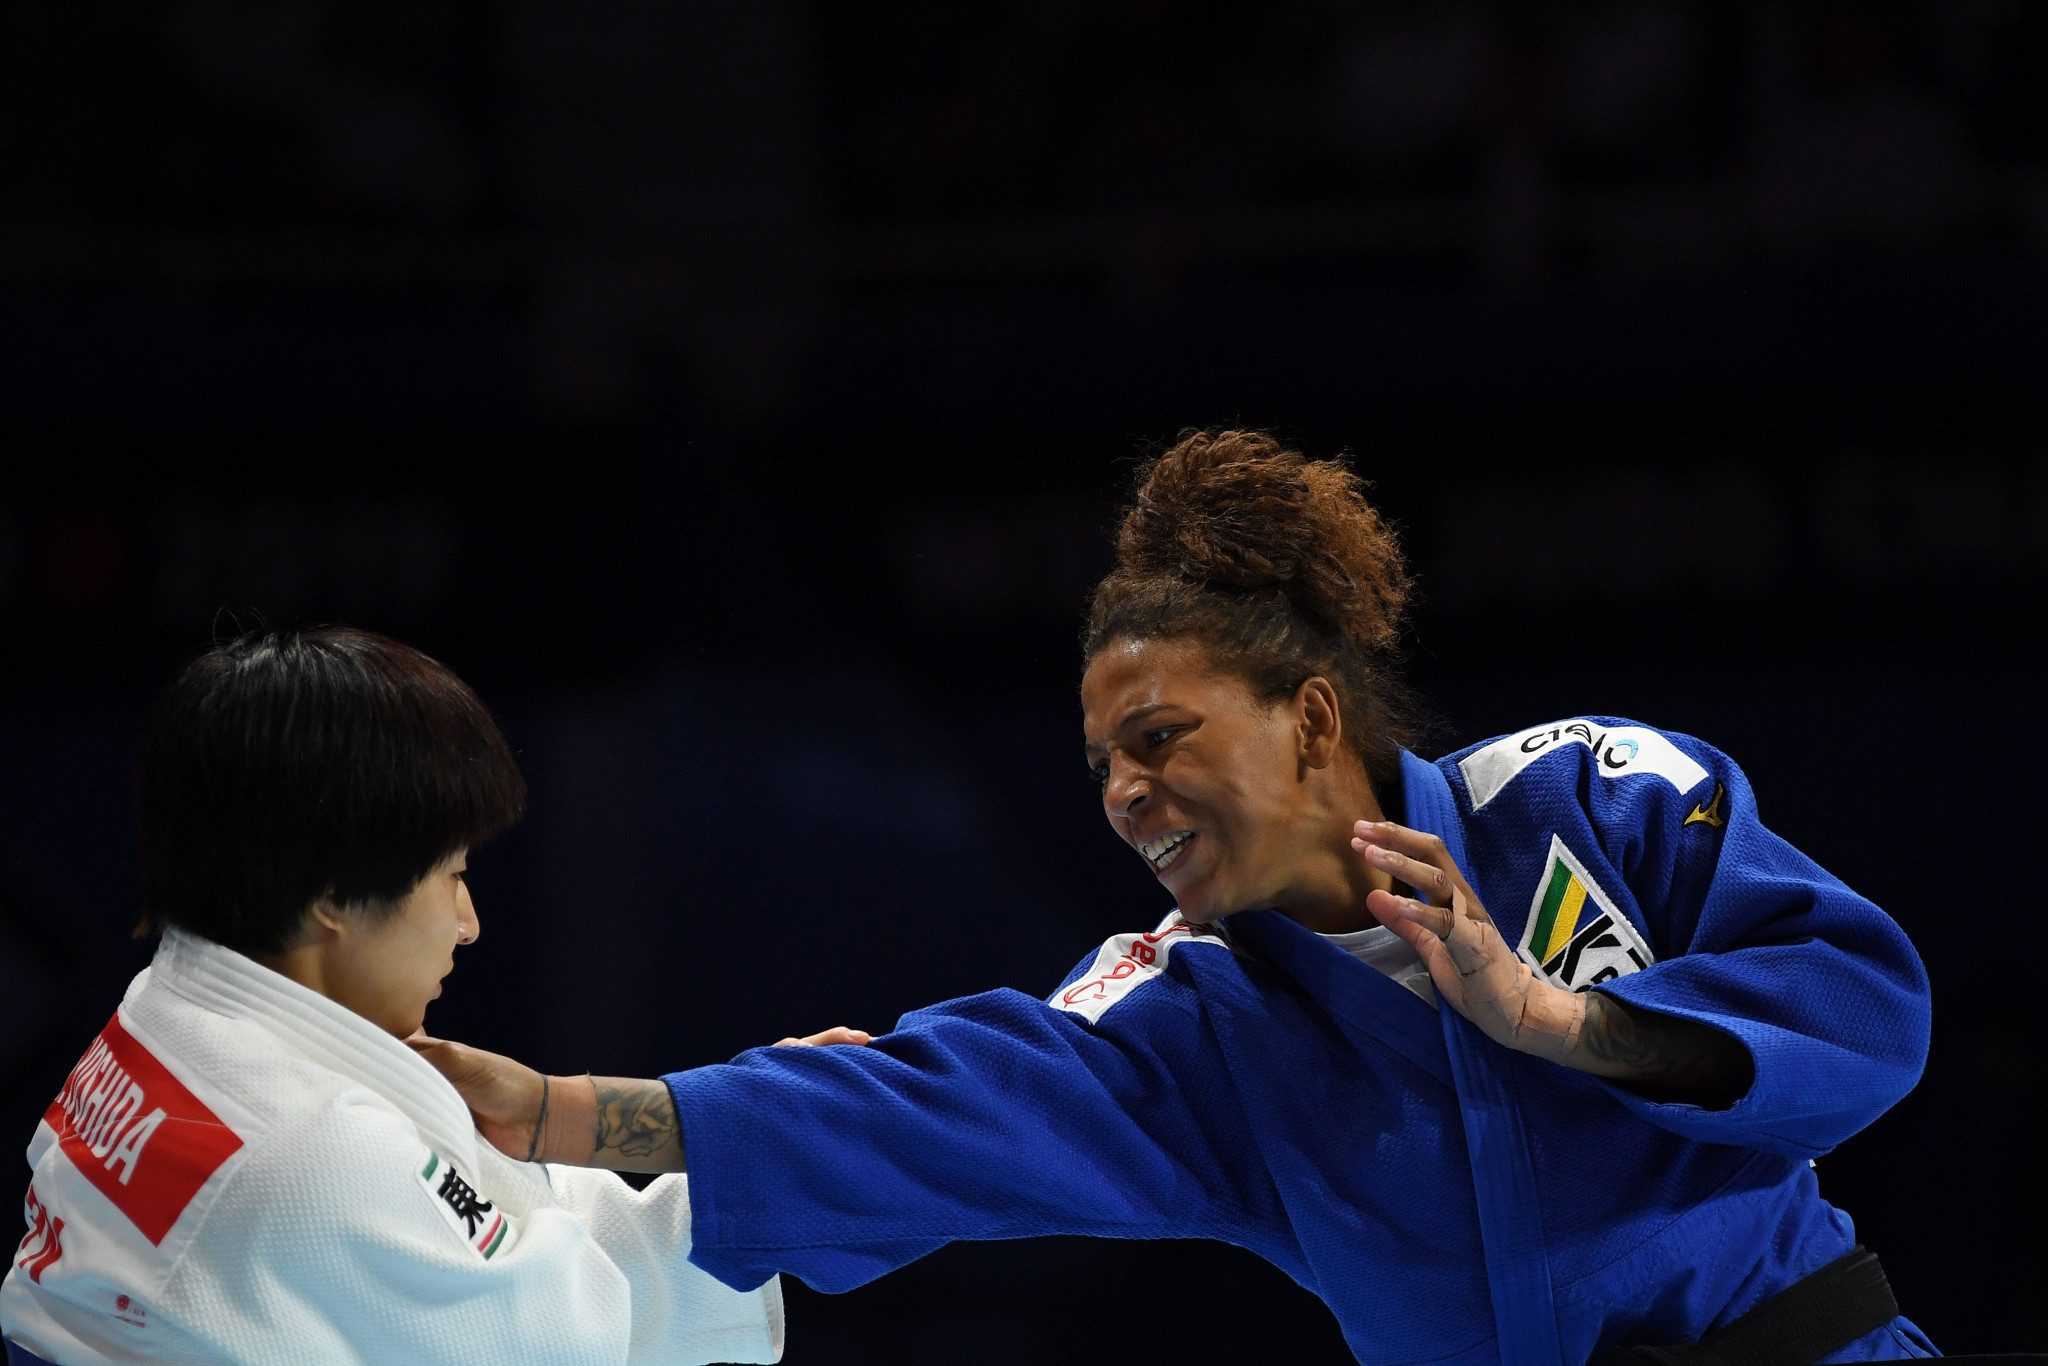 The Brazilian Olympic champion has insisted she did not intentionally take the banned substance ©Getty Images